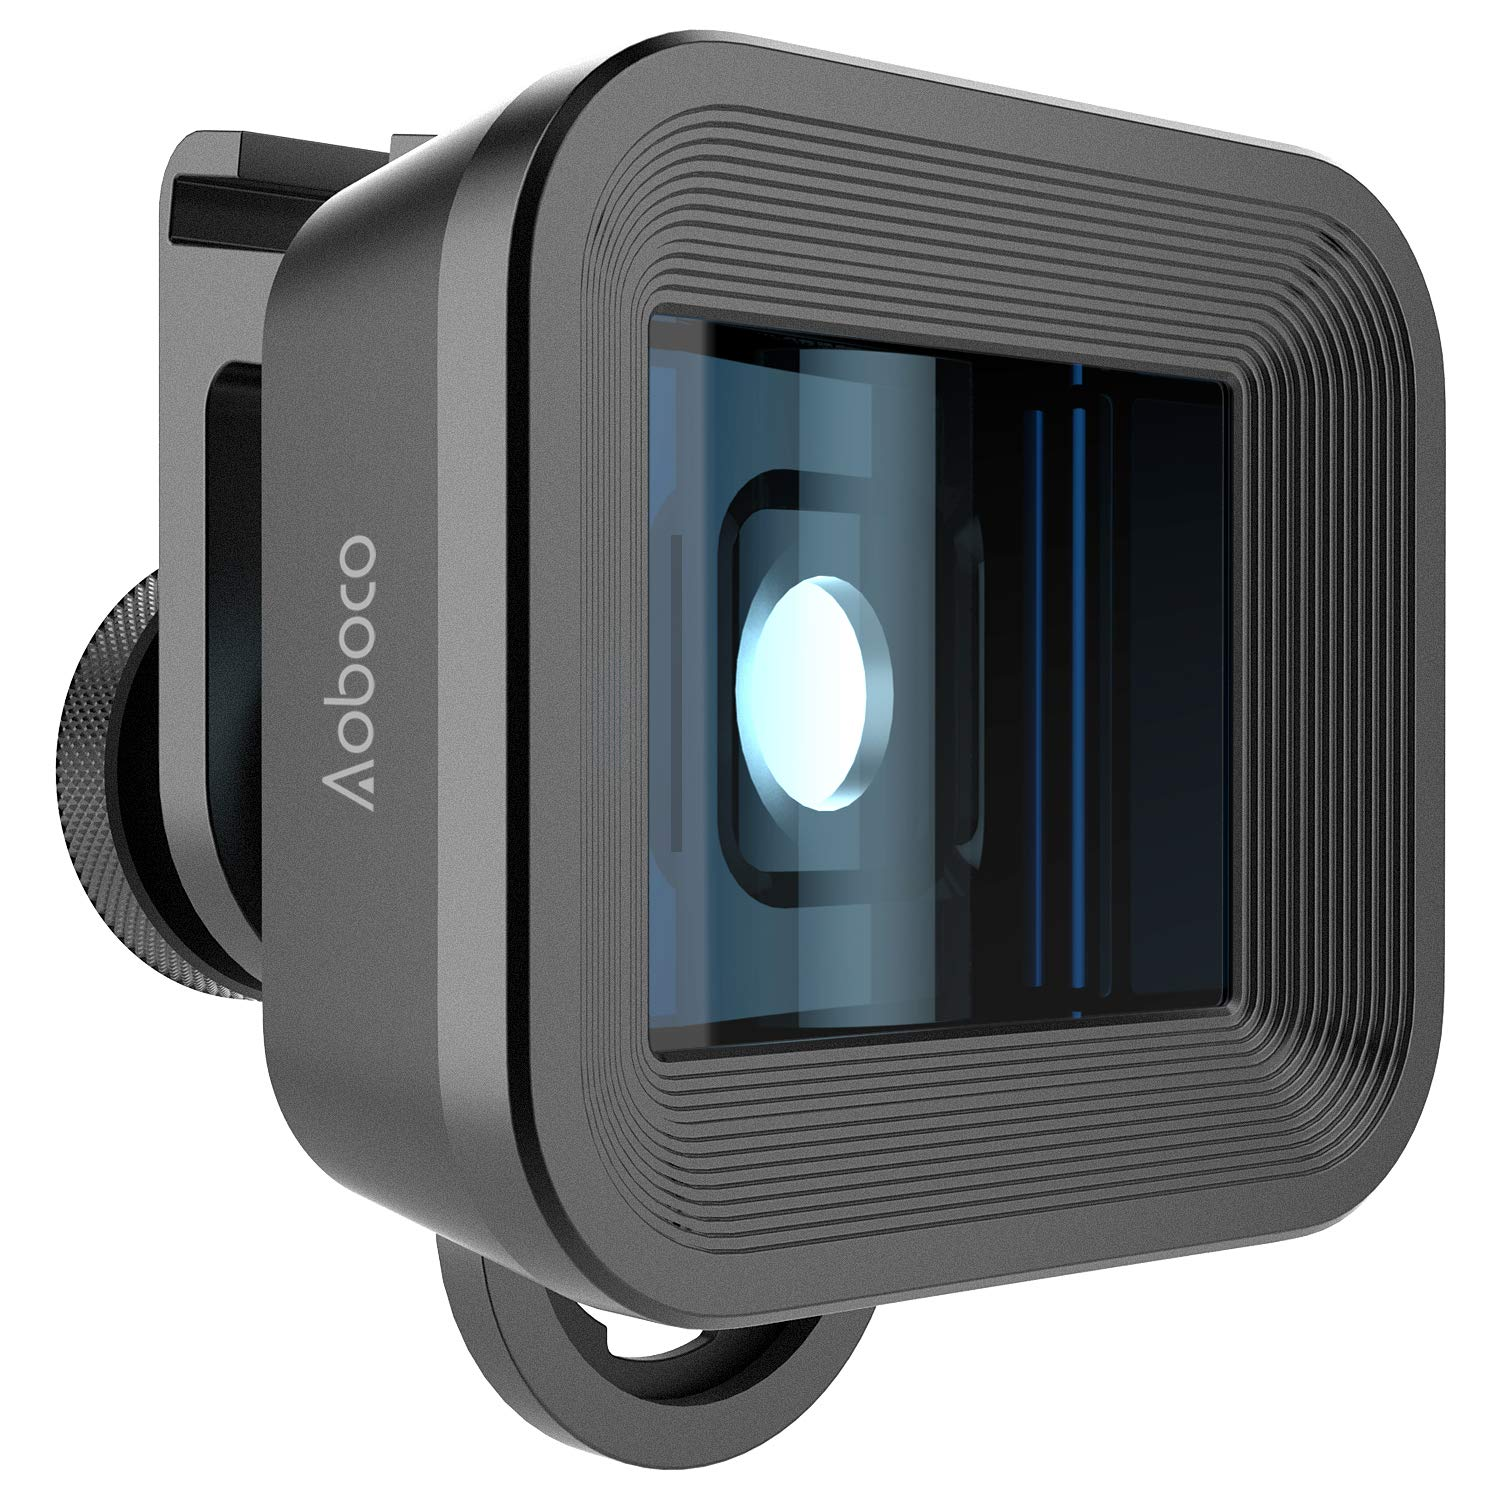 Aoboco 1.33X Anamorphic Lens for iPhone, Pixel, Samsung Galaxy and Note, Widescreen Mobile Filmmaking Lens by Aoboco